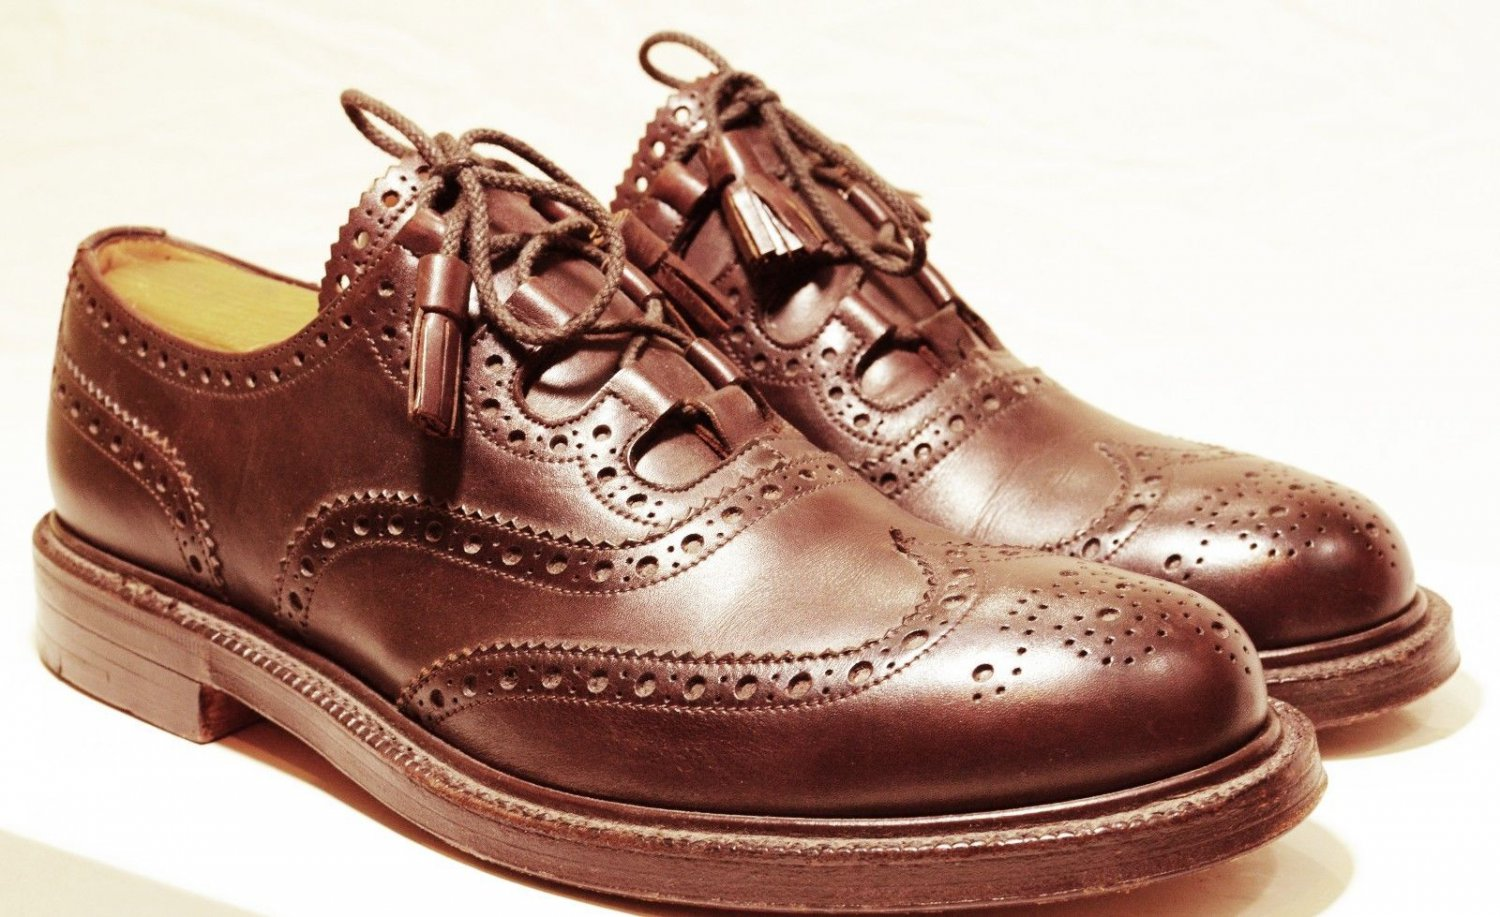 Size 11 US Highland Kilt Brown Leather Shoes Ghillie Brogues Leather Sole And Leather Upper